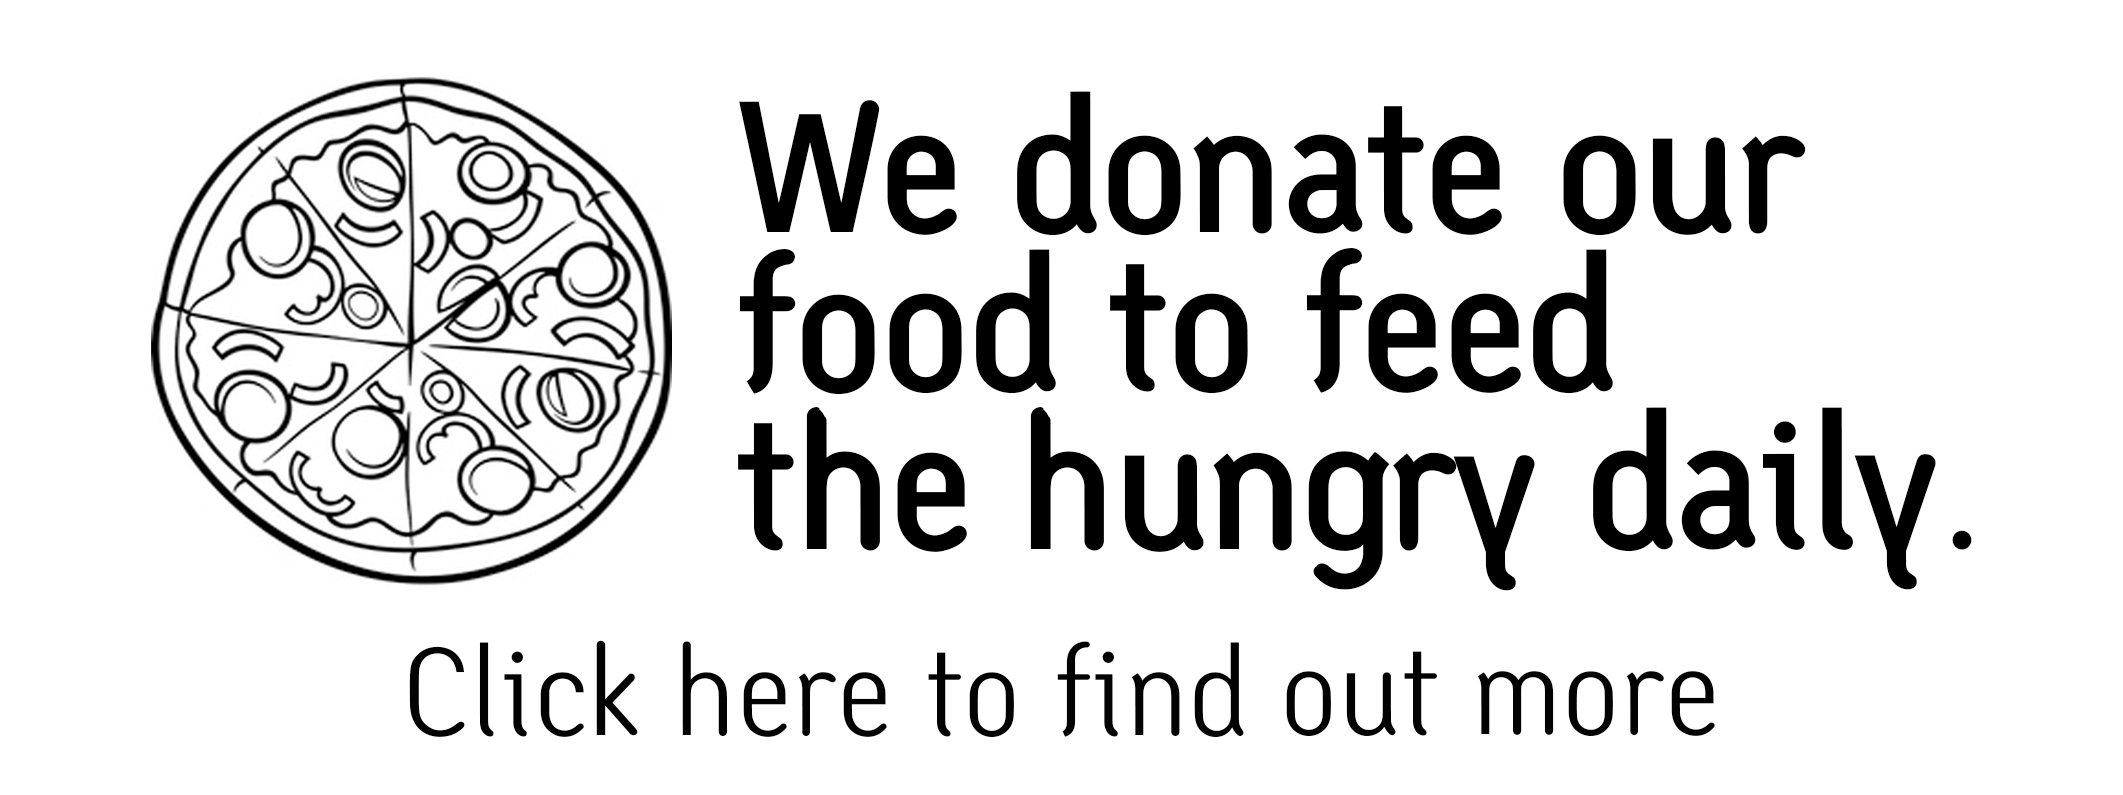 Leftover food charity donations